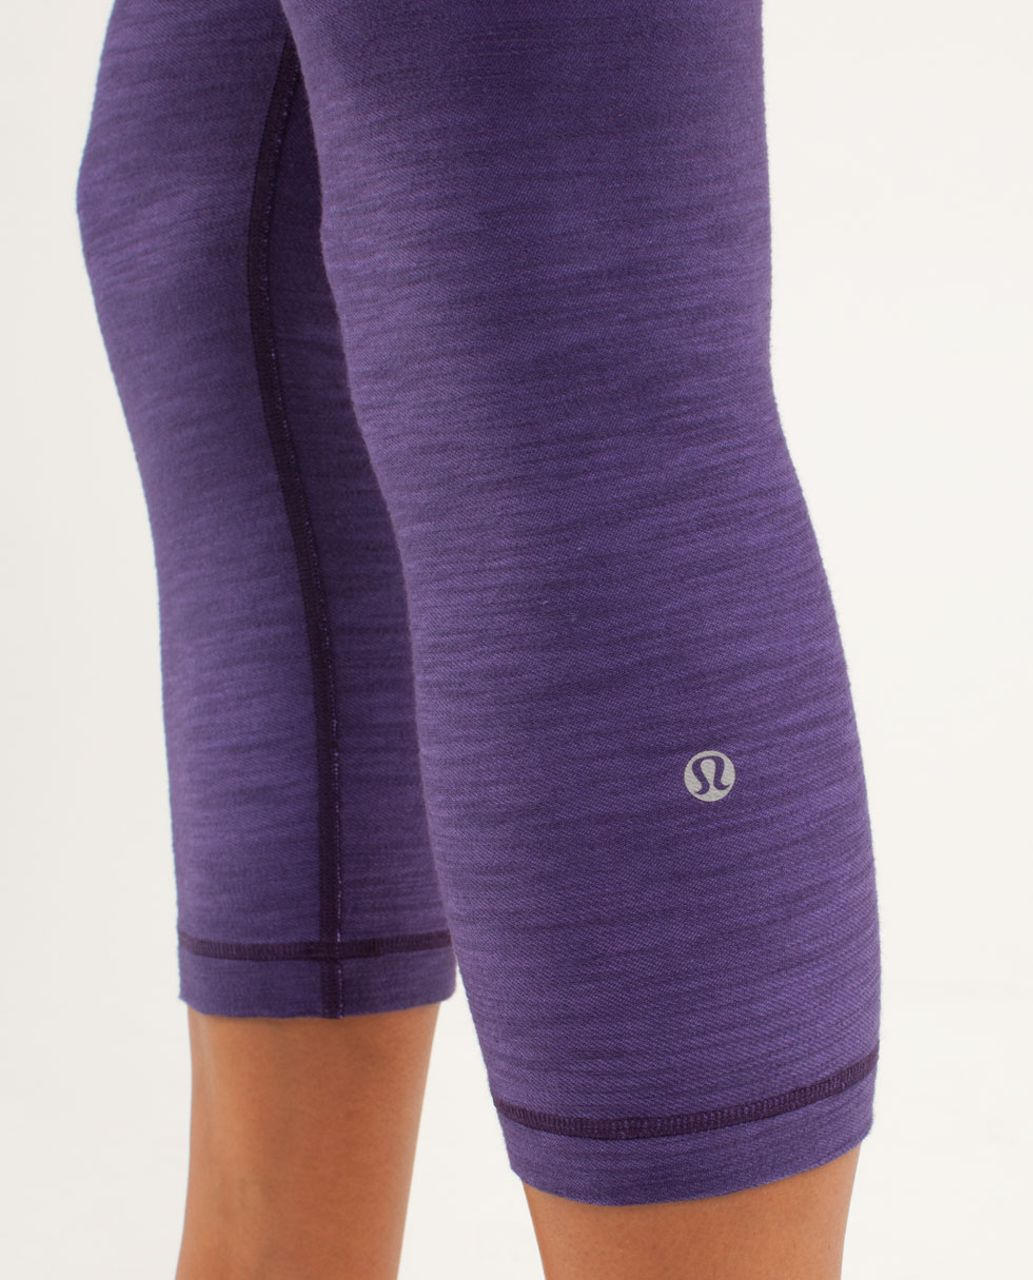 Lululemon Wunder Under Crop *Denim - Dense Purple Slub Denim / Fall 12 Quilt 4 / Angel Blue